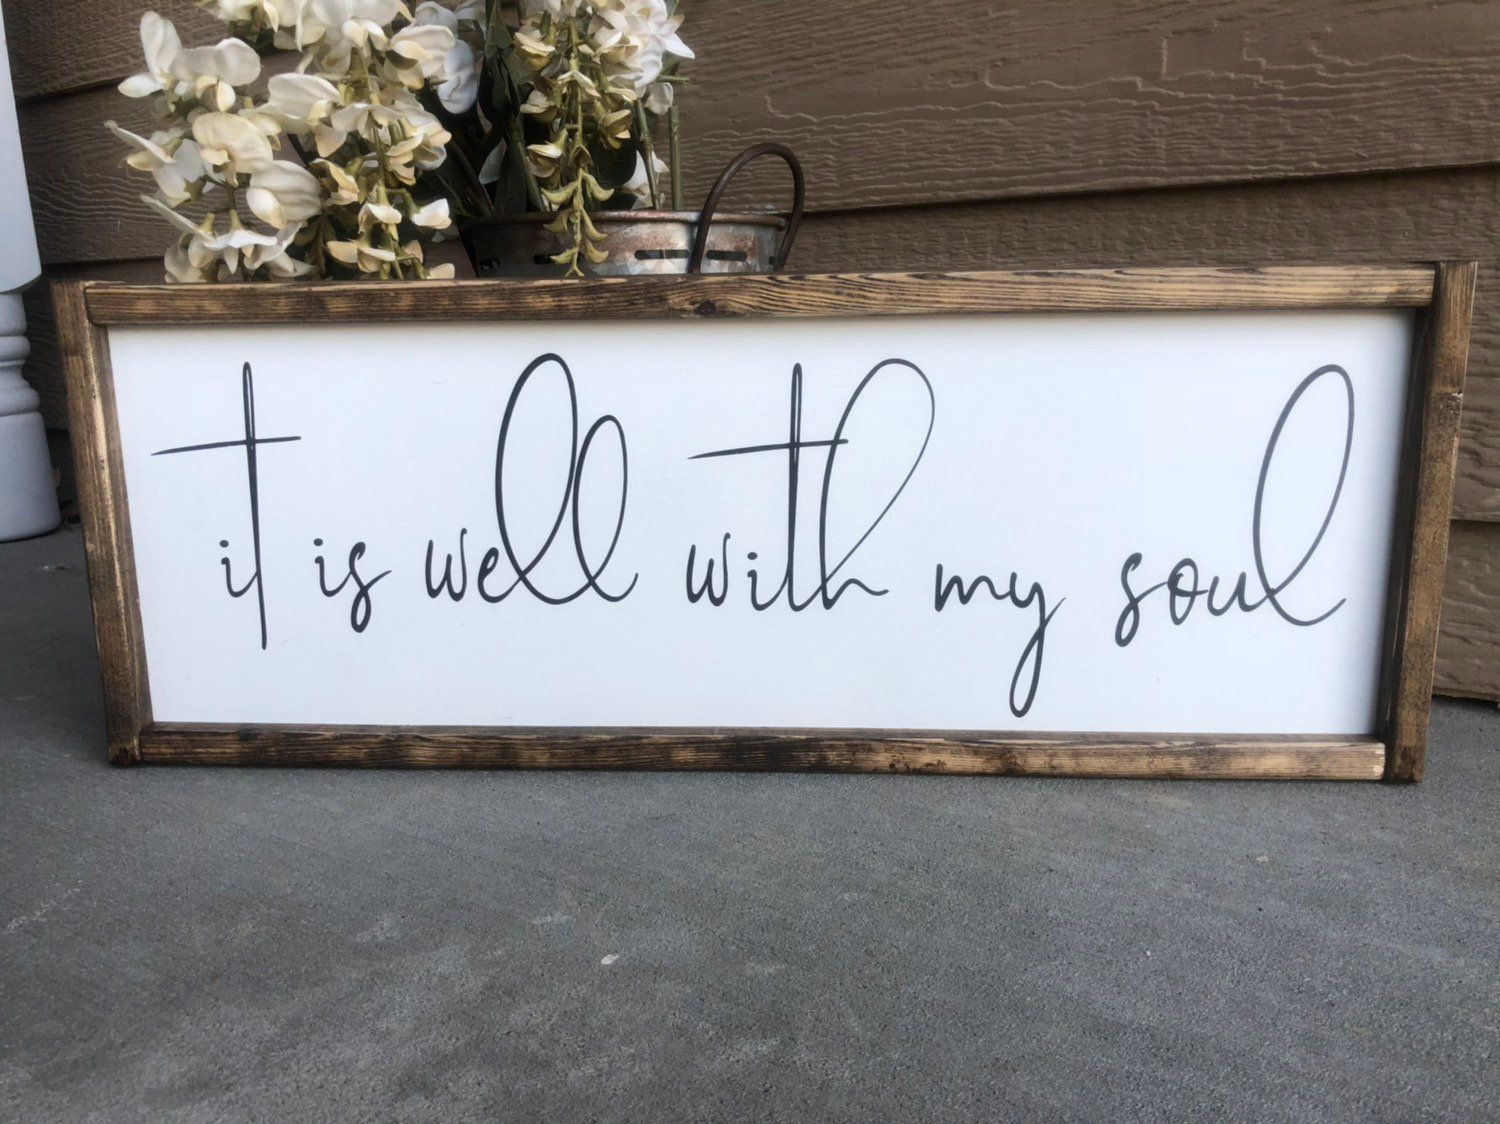 Signs With Quotes Farmhouse Decor Farmhouse Signs It Is Well With My Soul Sign Wall Decor Signs For Home In 2020 Home Decor Signs Wood Signs Decor